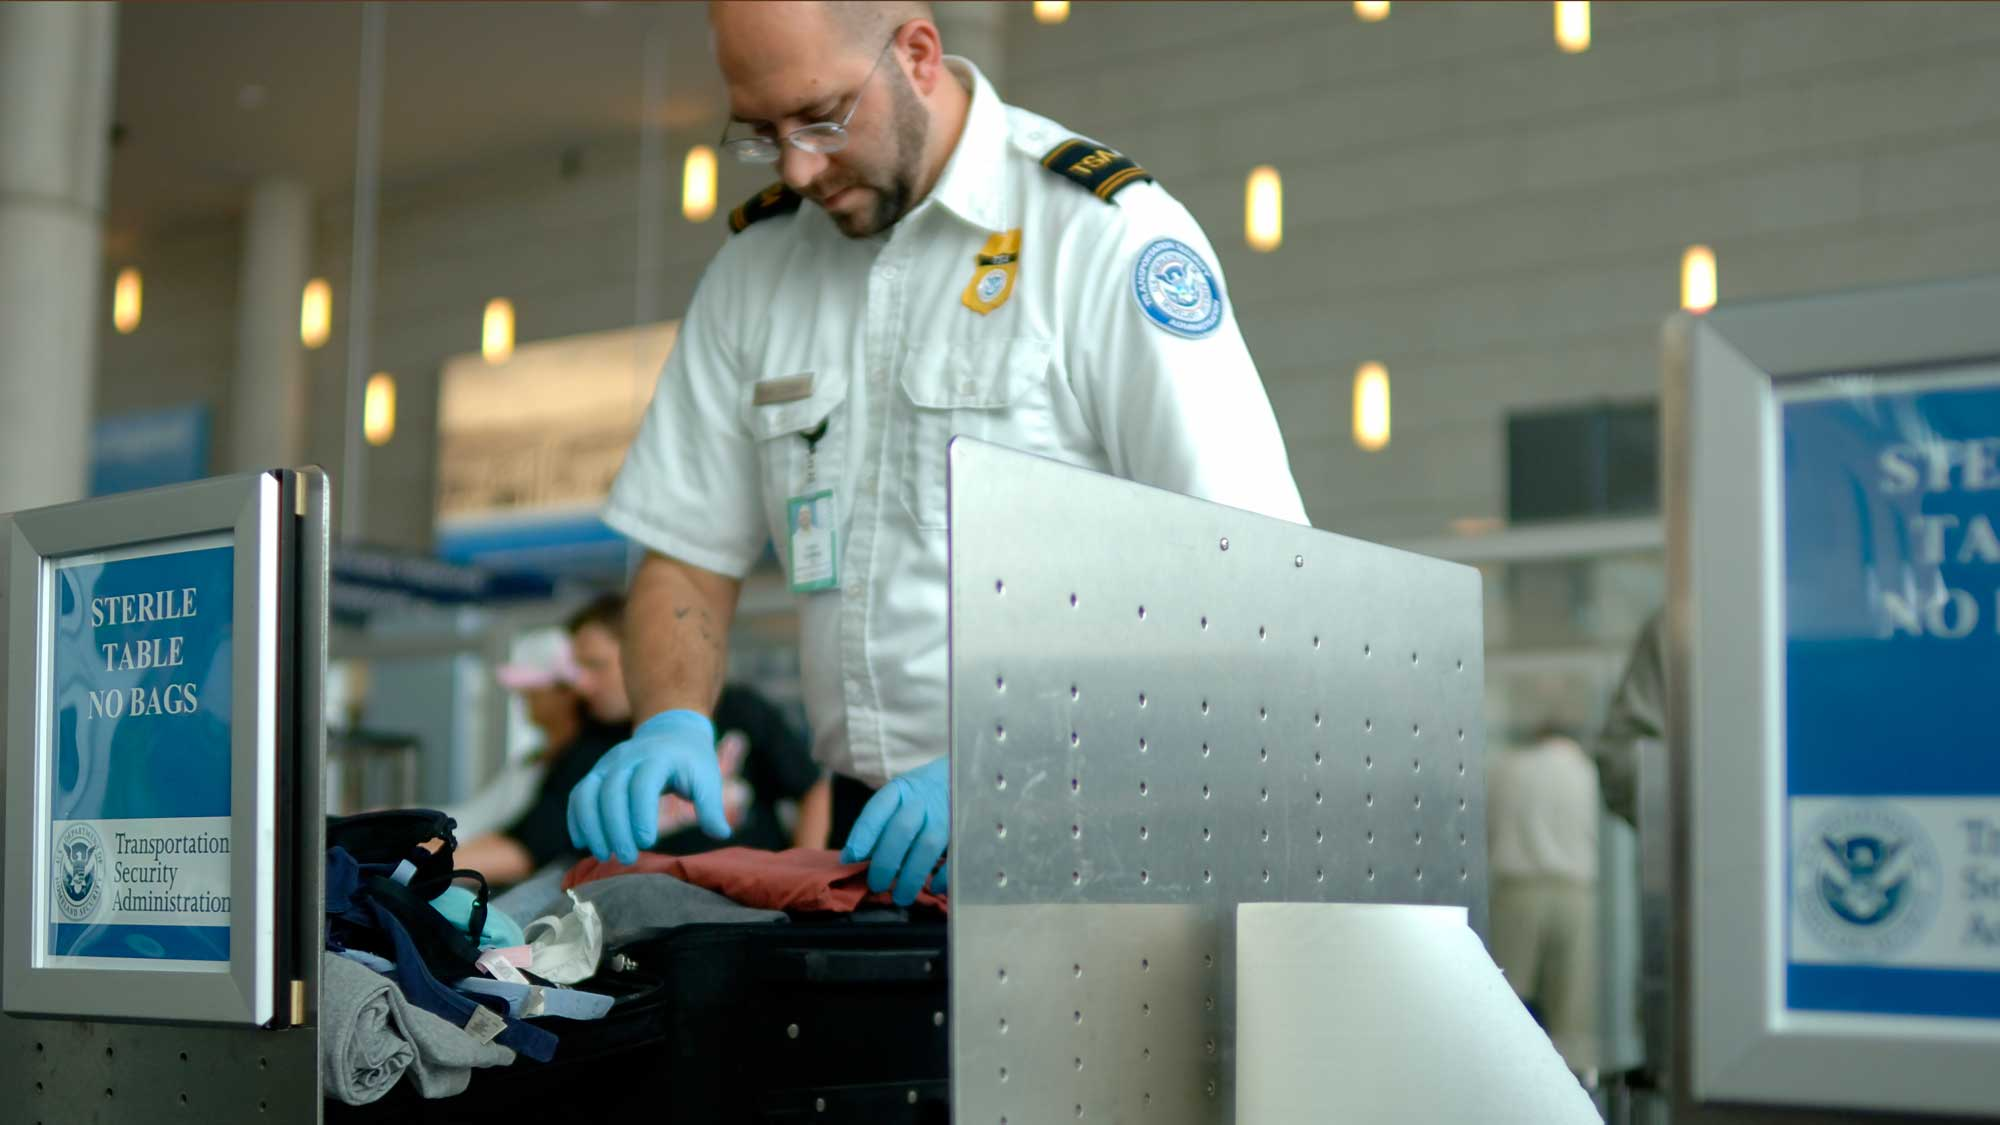 a TSA security employee searches a bag in an airport security area